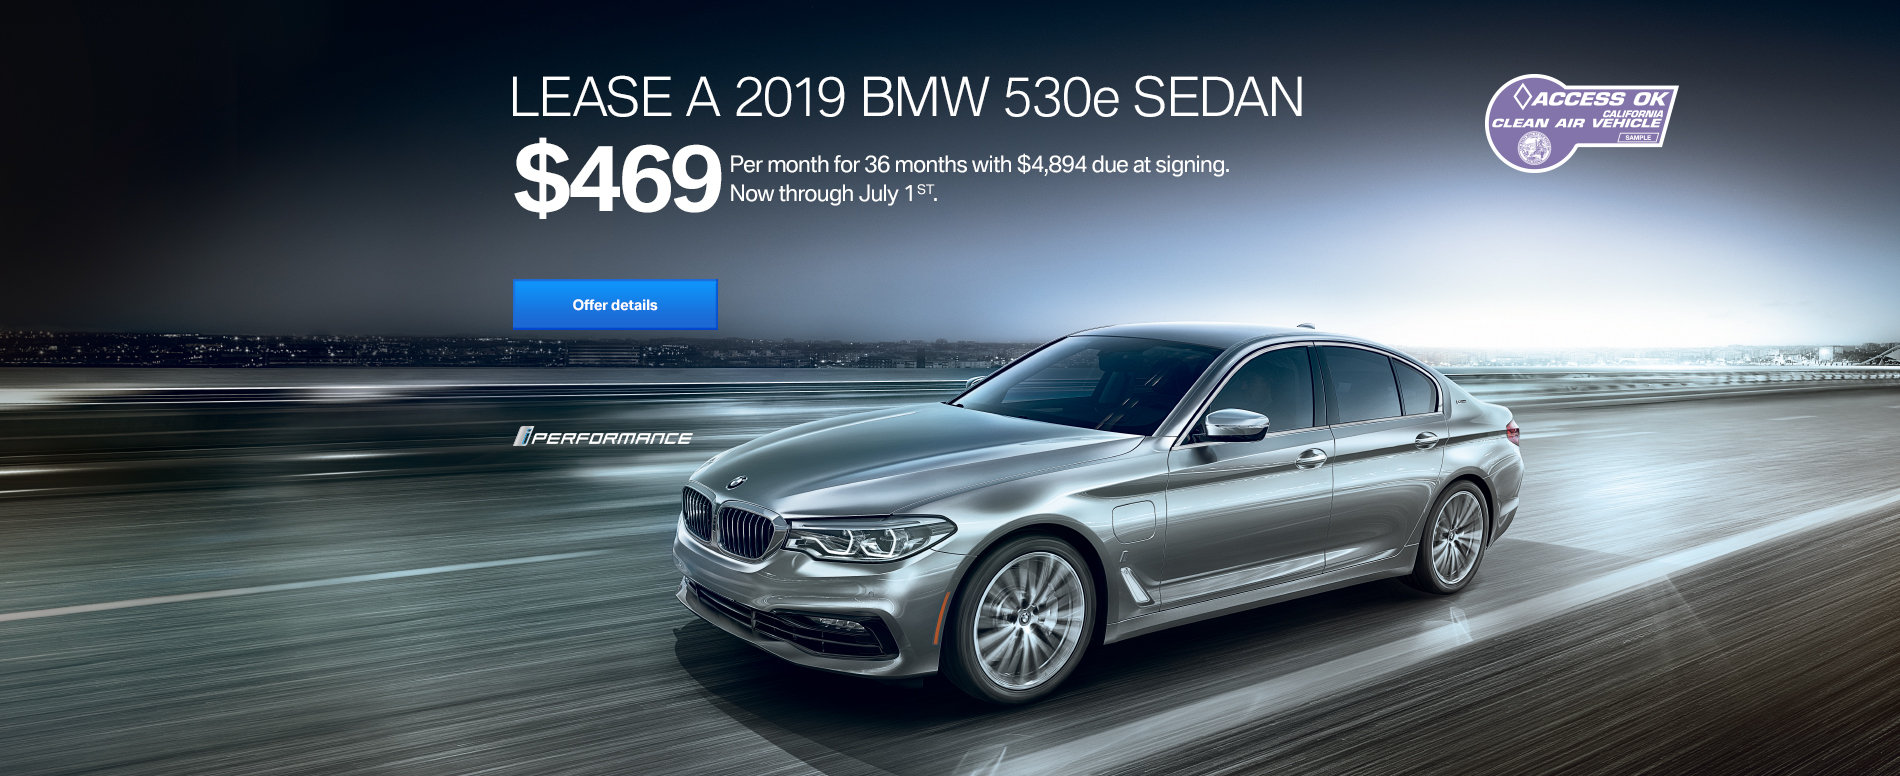 LEASE A 2019 BMW 530e FOR $469/MONTH FOR 36 MONTHS WITH $4,894 D